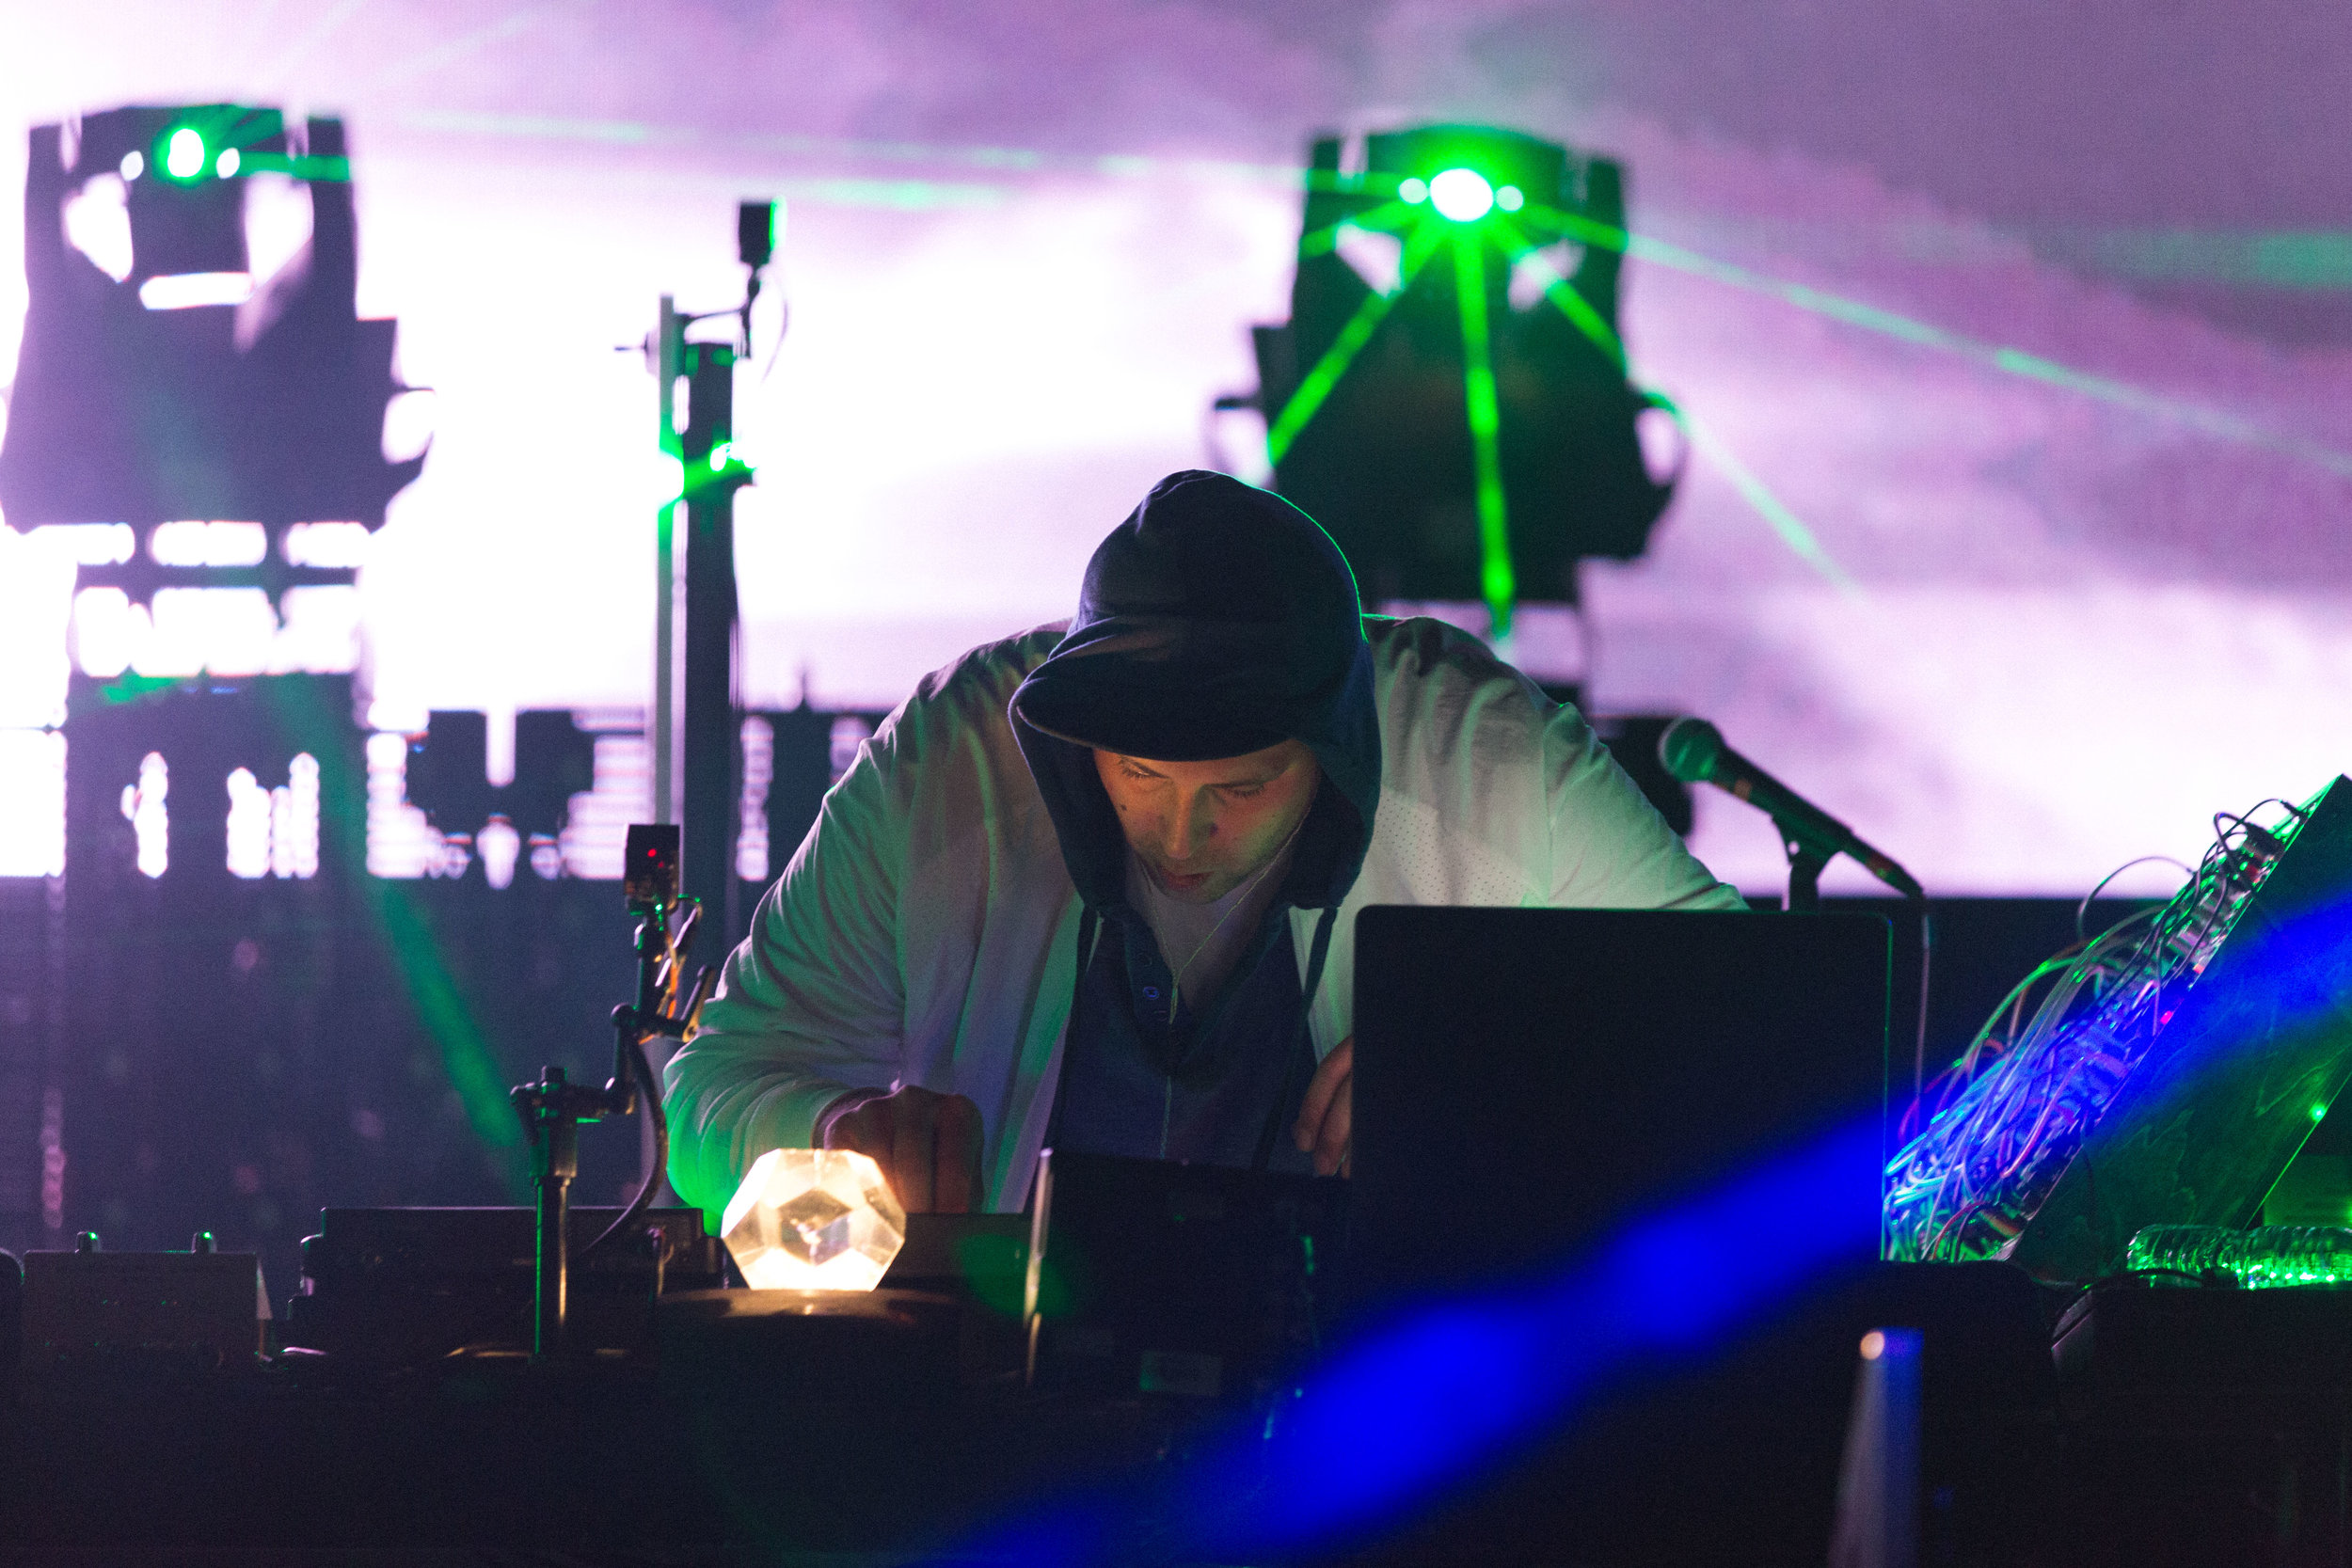 Pretty Lights Live at Red Rocks 2017 - August 11-12,2017 - Morrison, Colorado